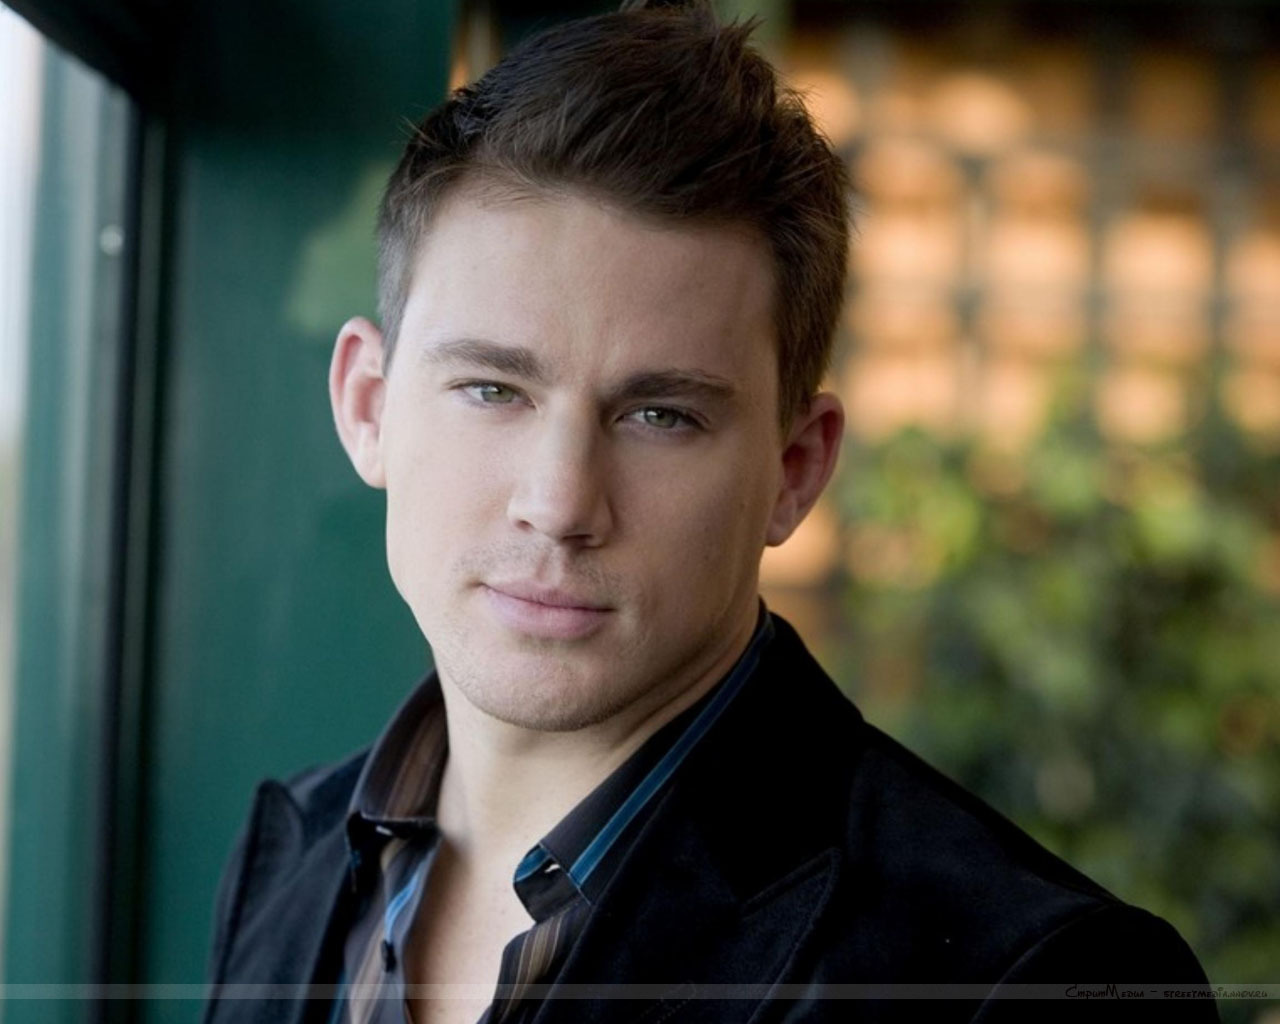 Soon to be seen taking to the stage and stripping in comedy sequel MAGIC MIKE XXL, superstar Channing Tatum has his heart set on drama TWO KISSES FOR MADDY.